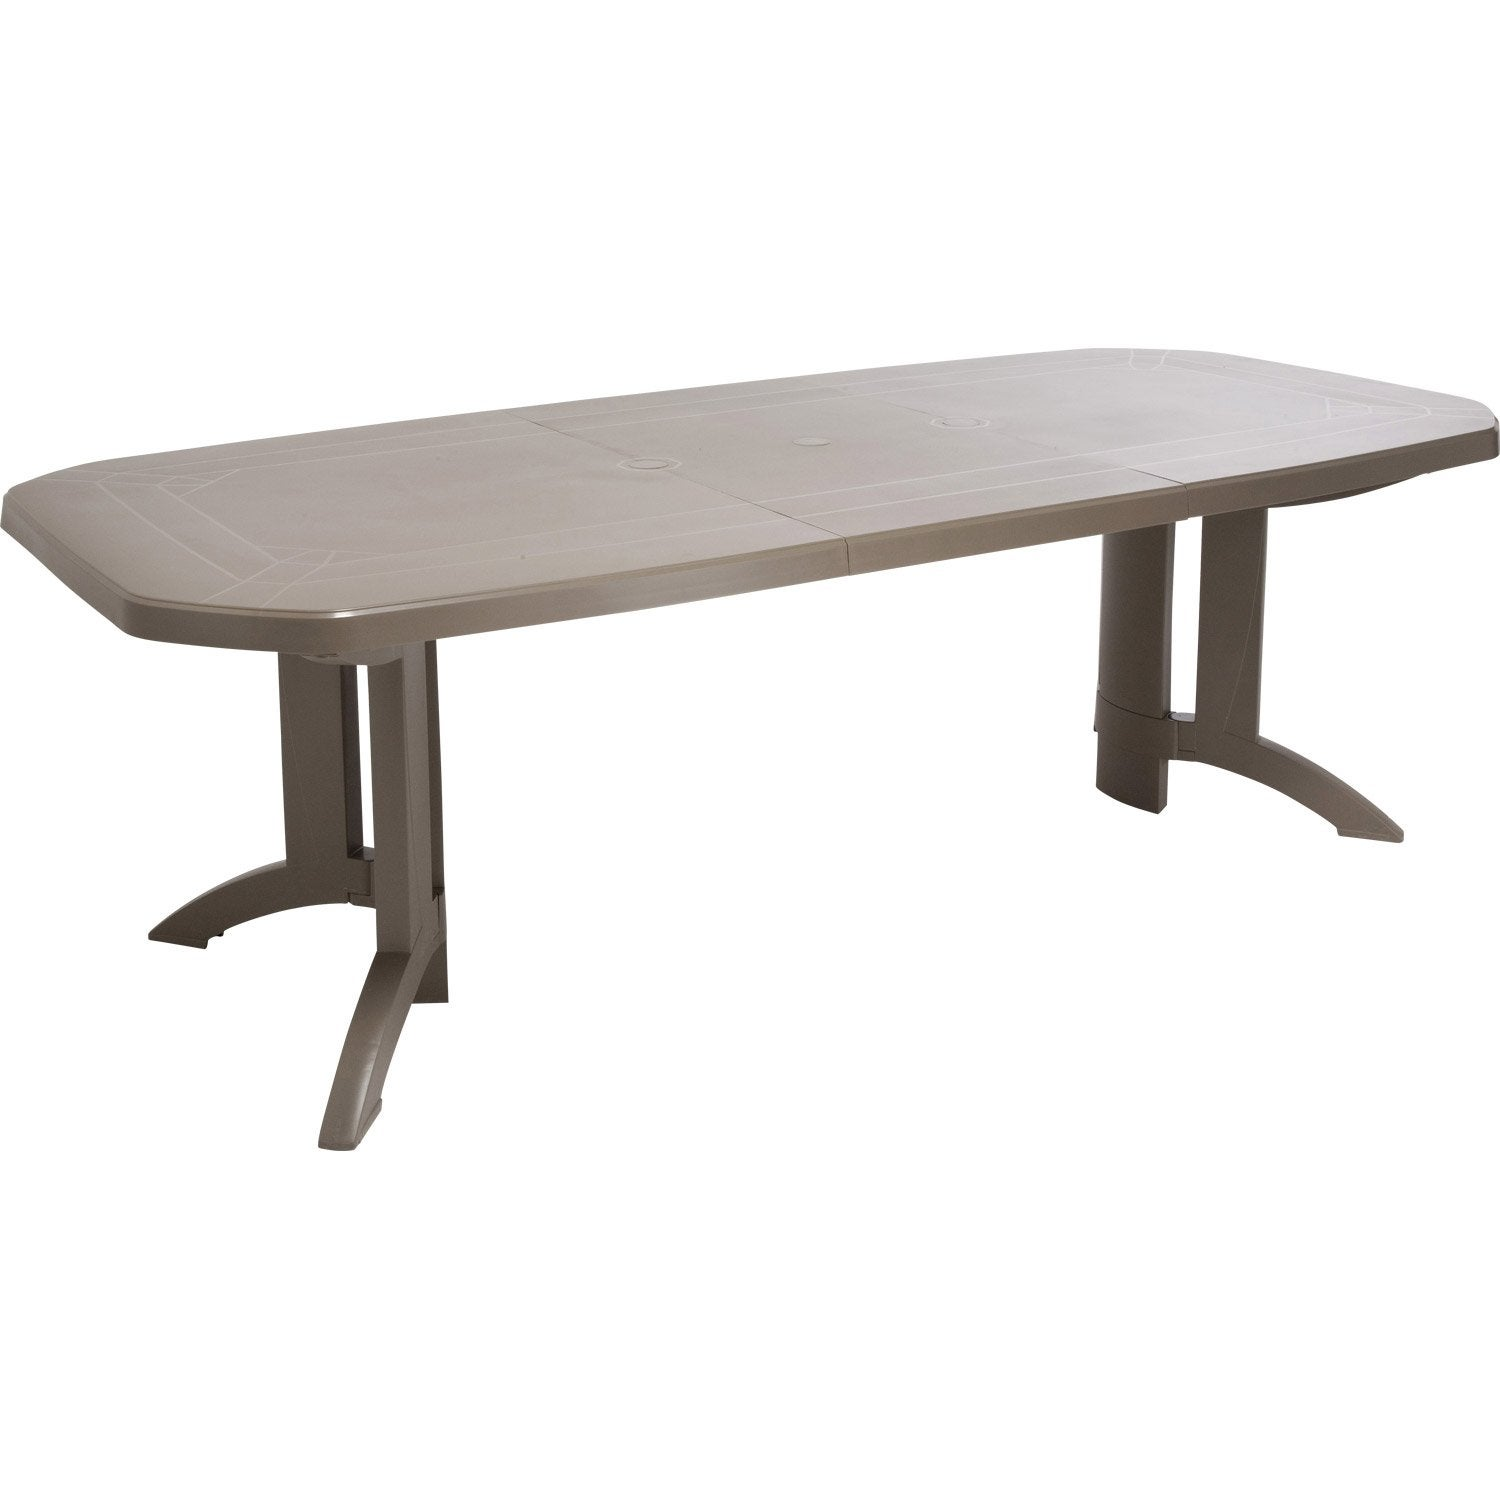 Table de jardin grosfillex v ga rectangulaire taupe 10 for Casetas para jardin leroy merlin